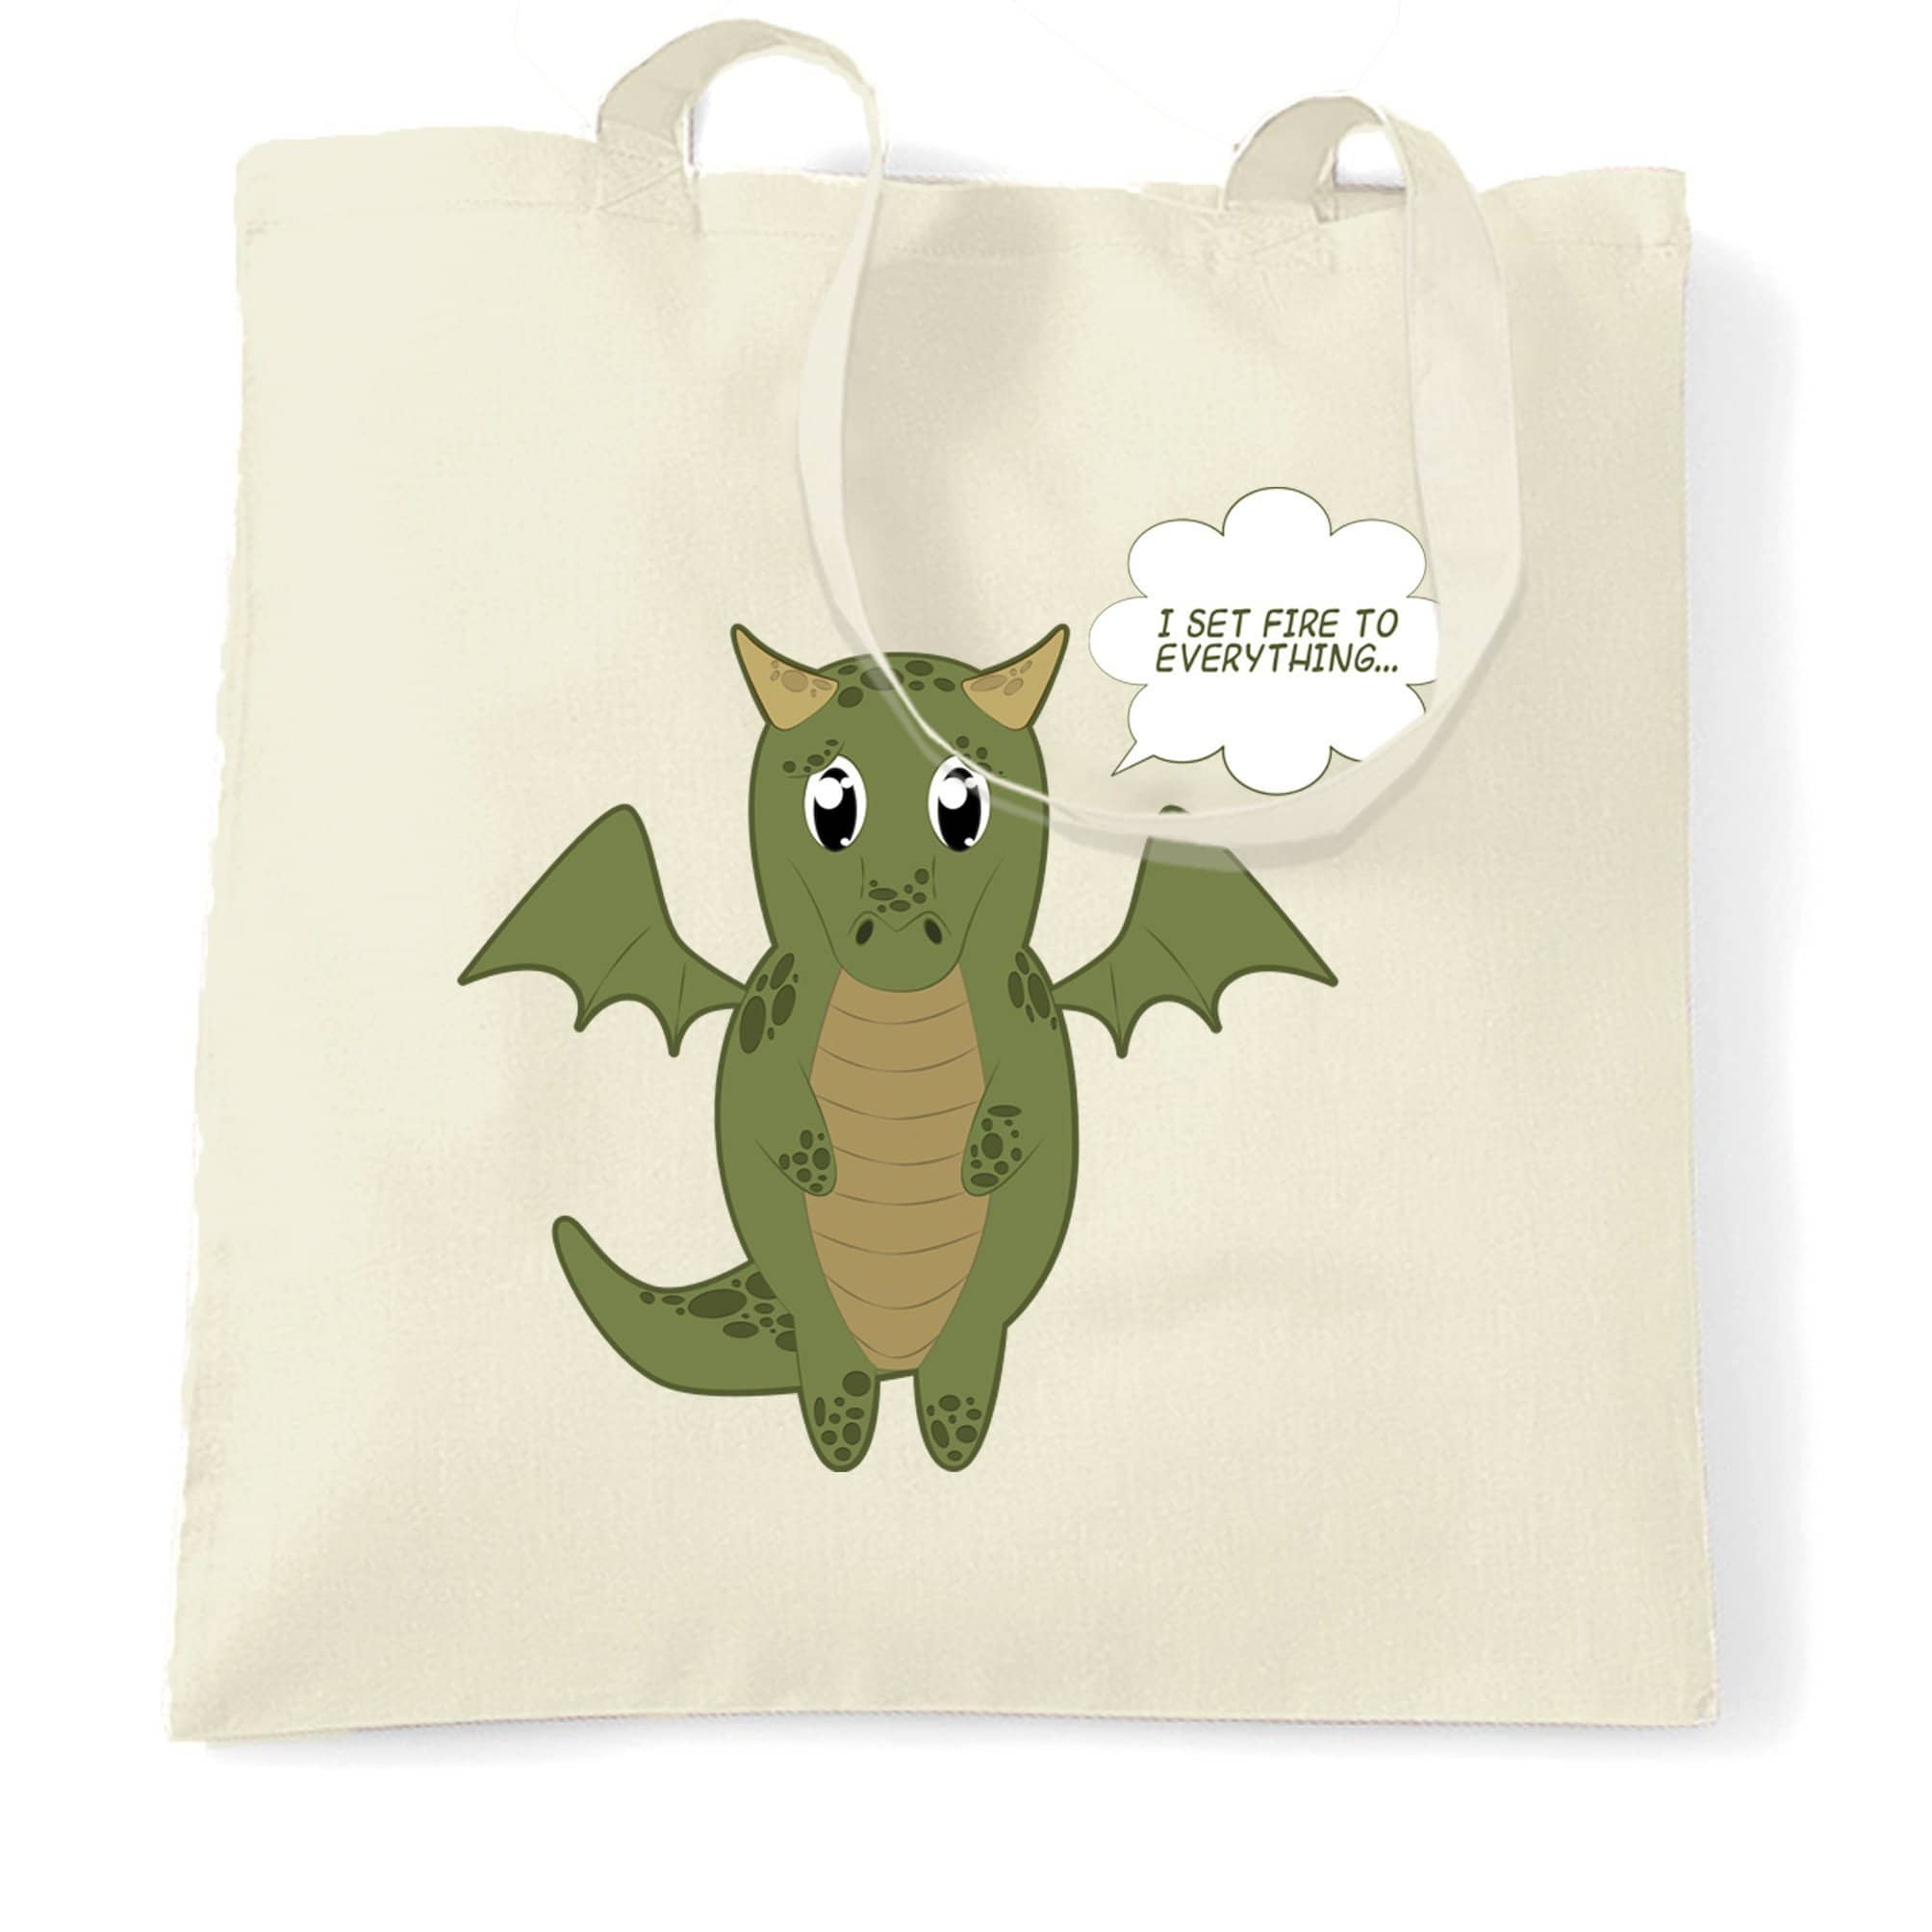 Cute Dragon Tote Bag I Set Fire To Everything Joke